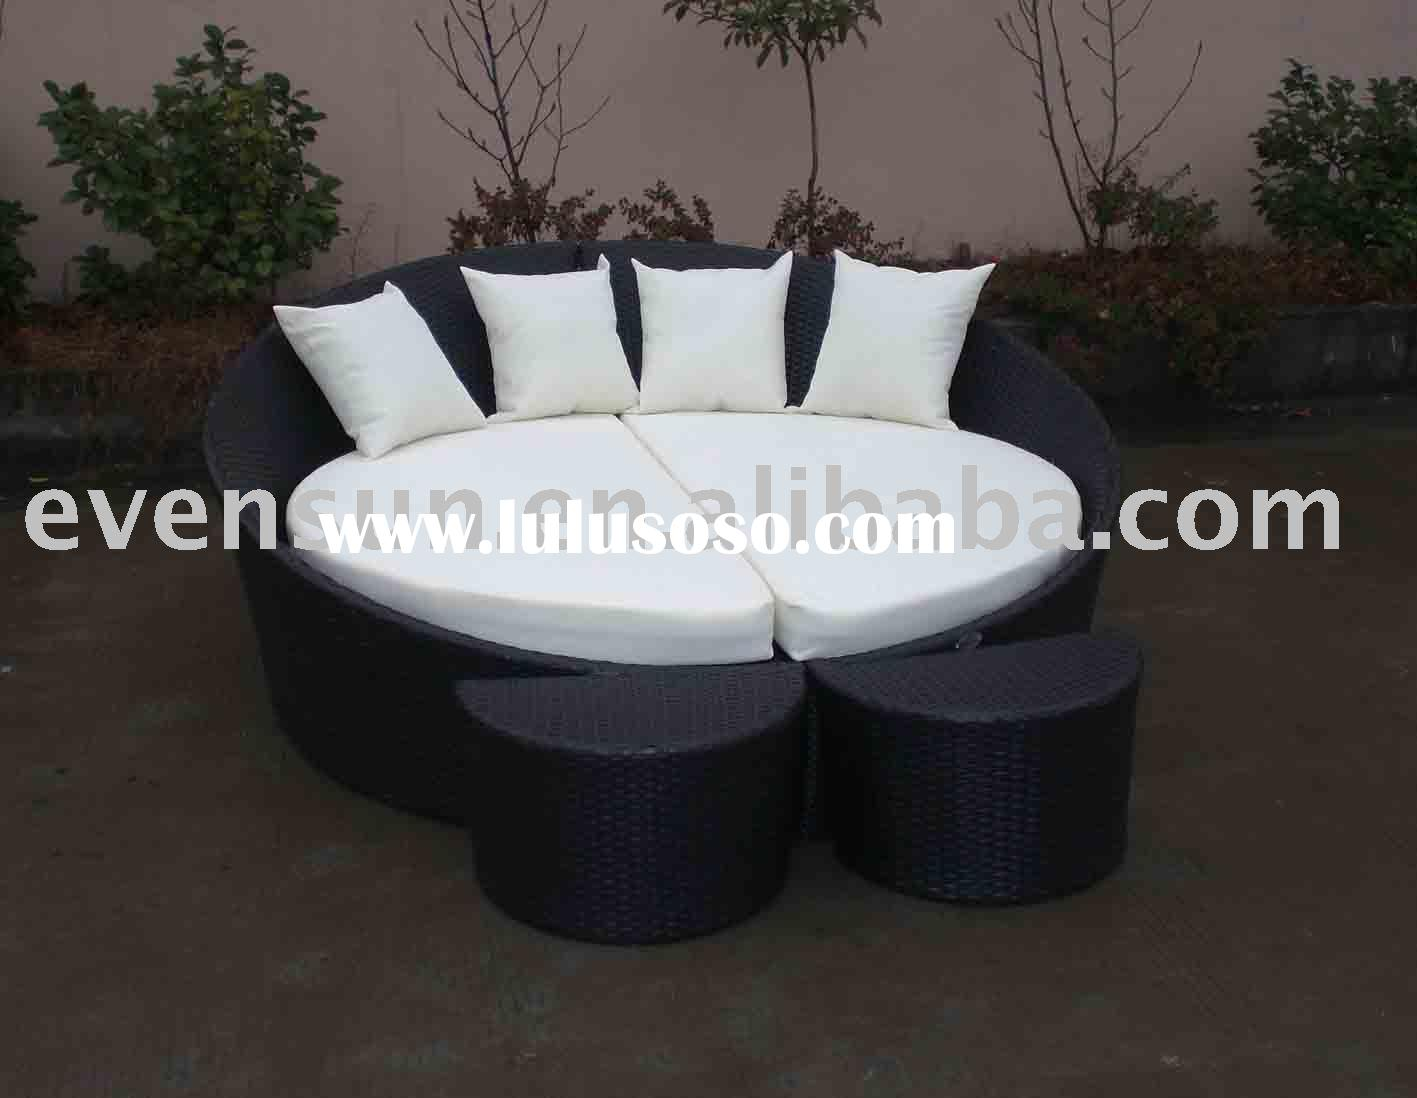 Wicker Bed Tray Wicker Bed Tray Manufacturers In Lulusoso